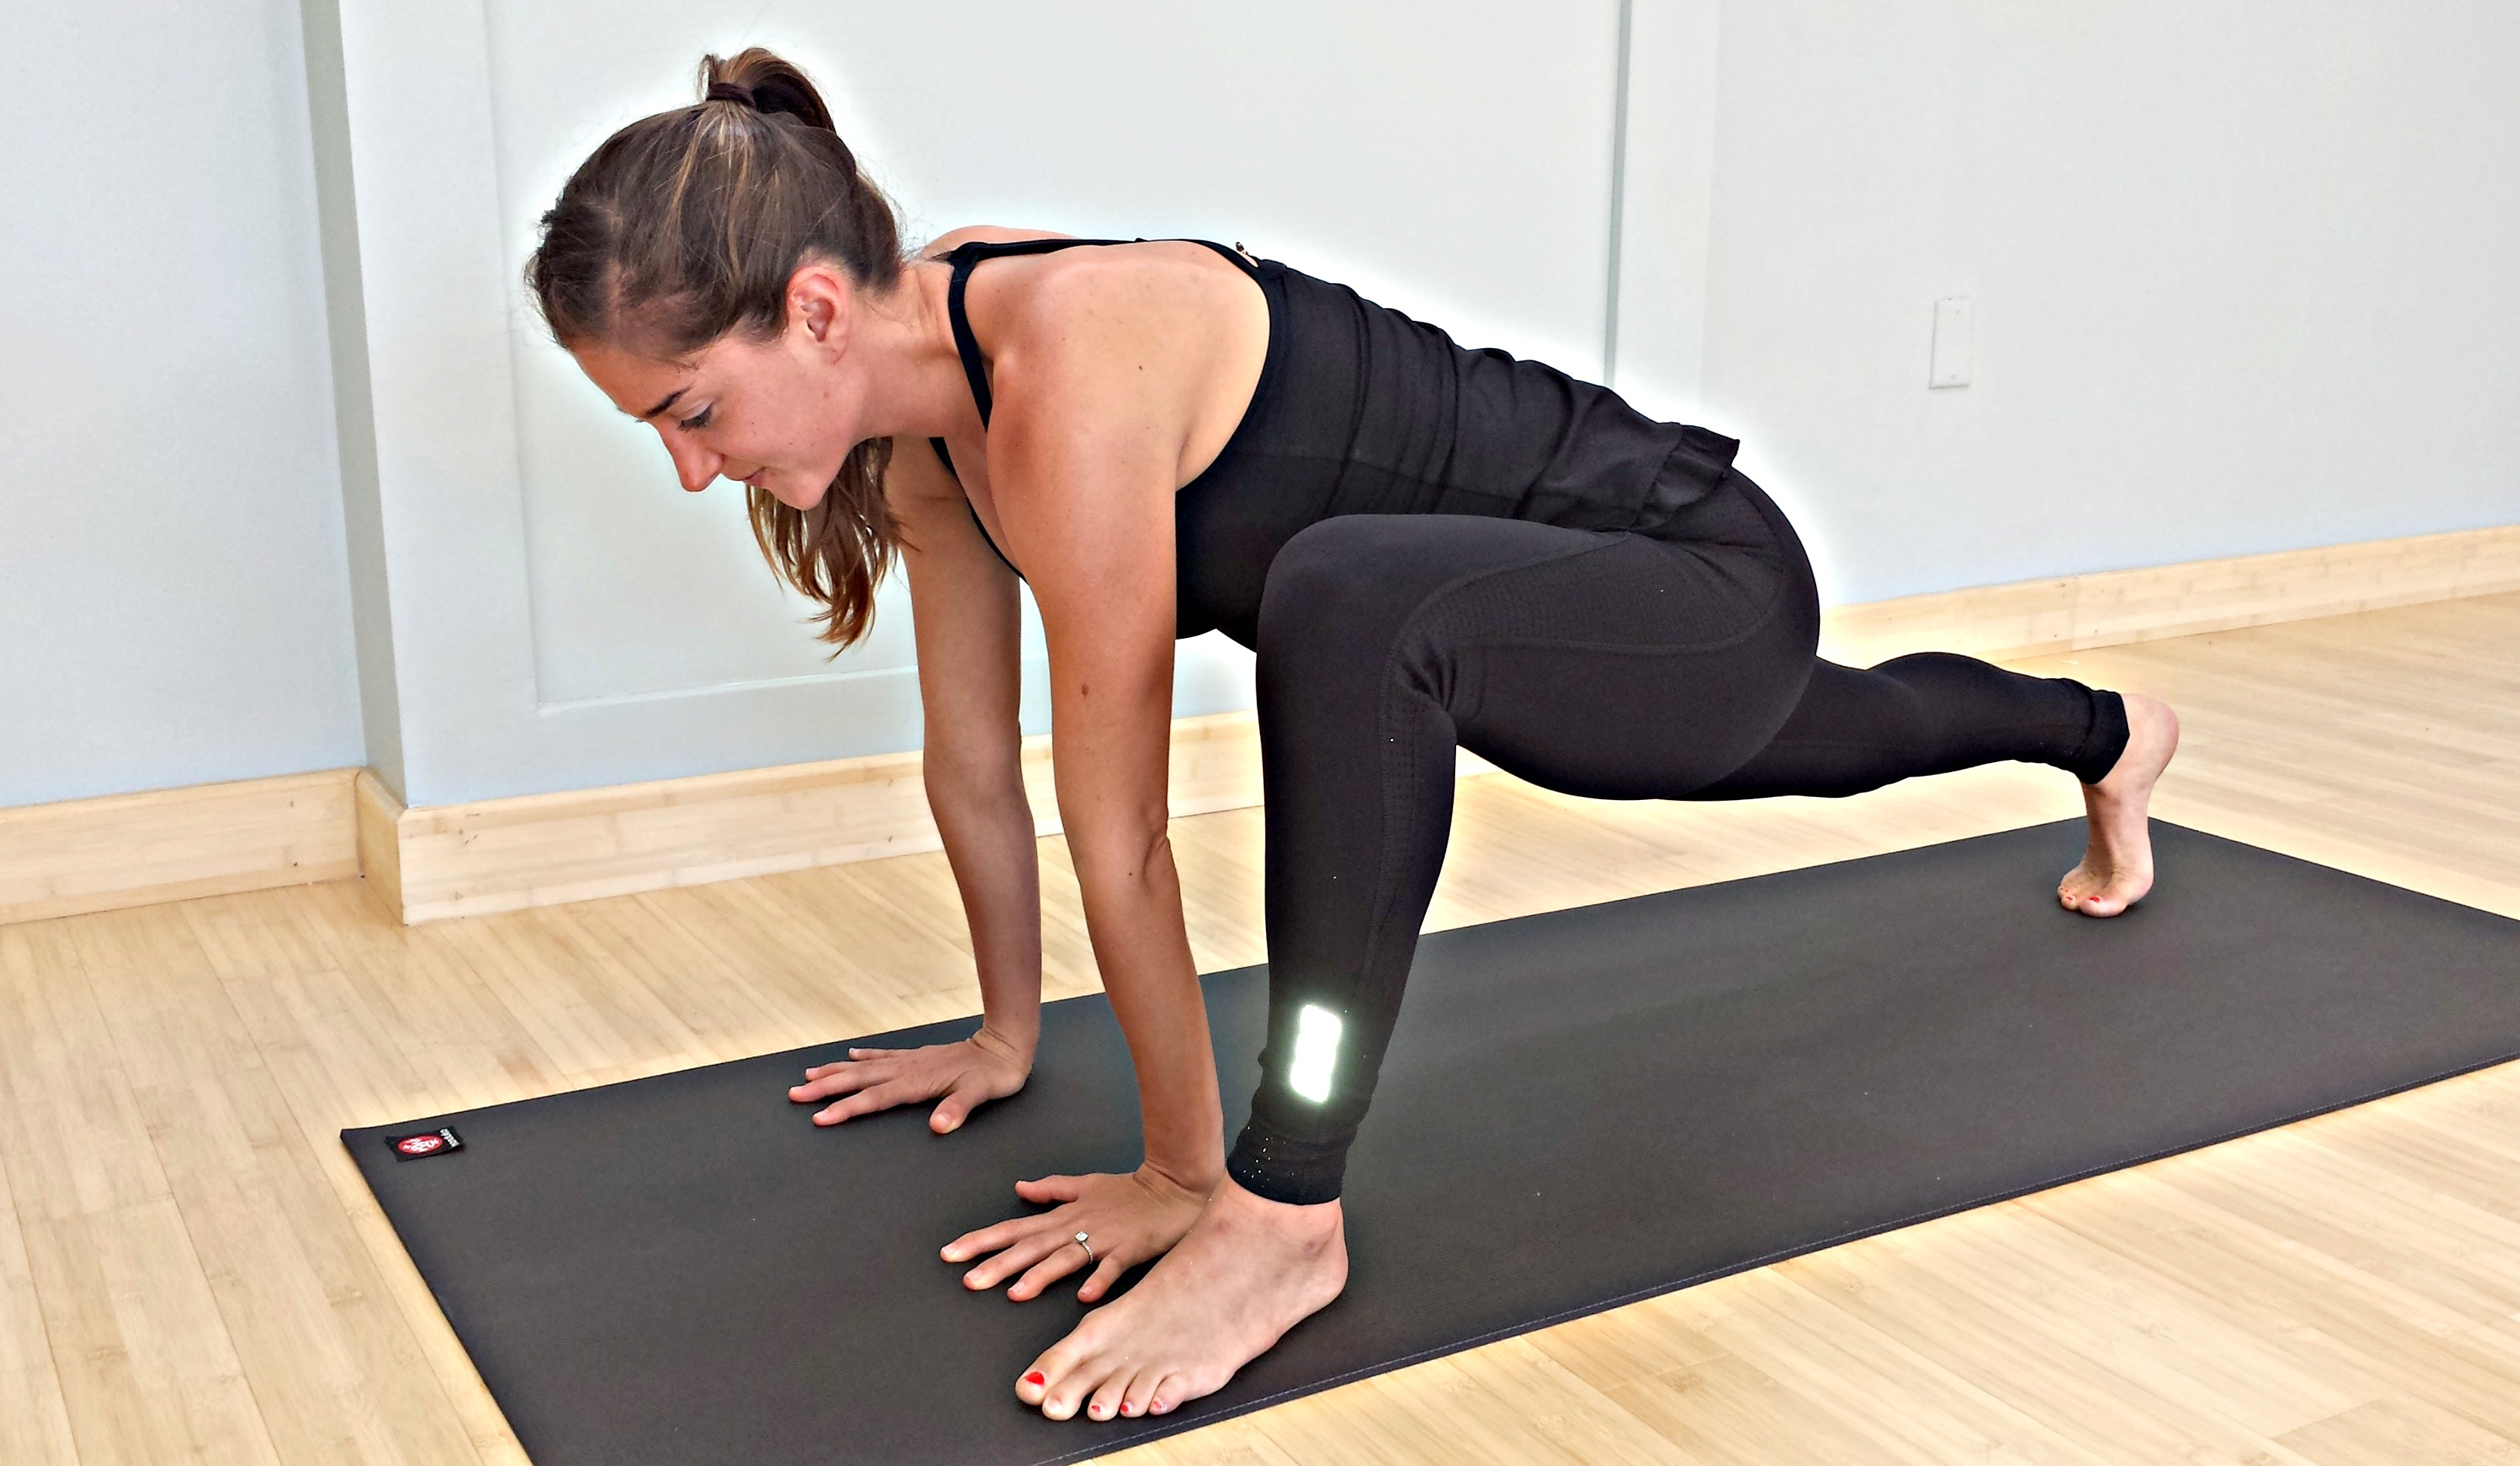 Runners Lunge, ONline Yoga Classes, Lorna Jane, MyYogaWorks, Yoga poses